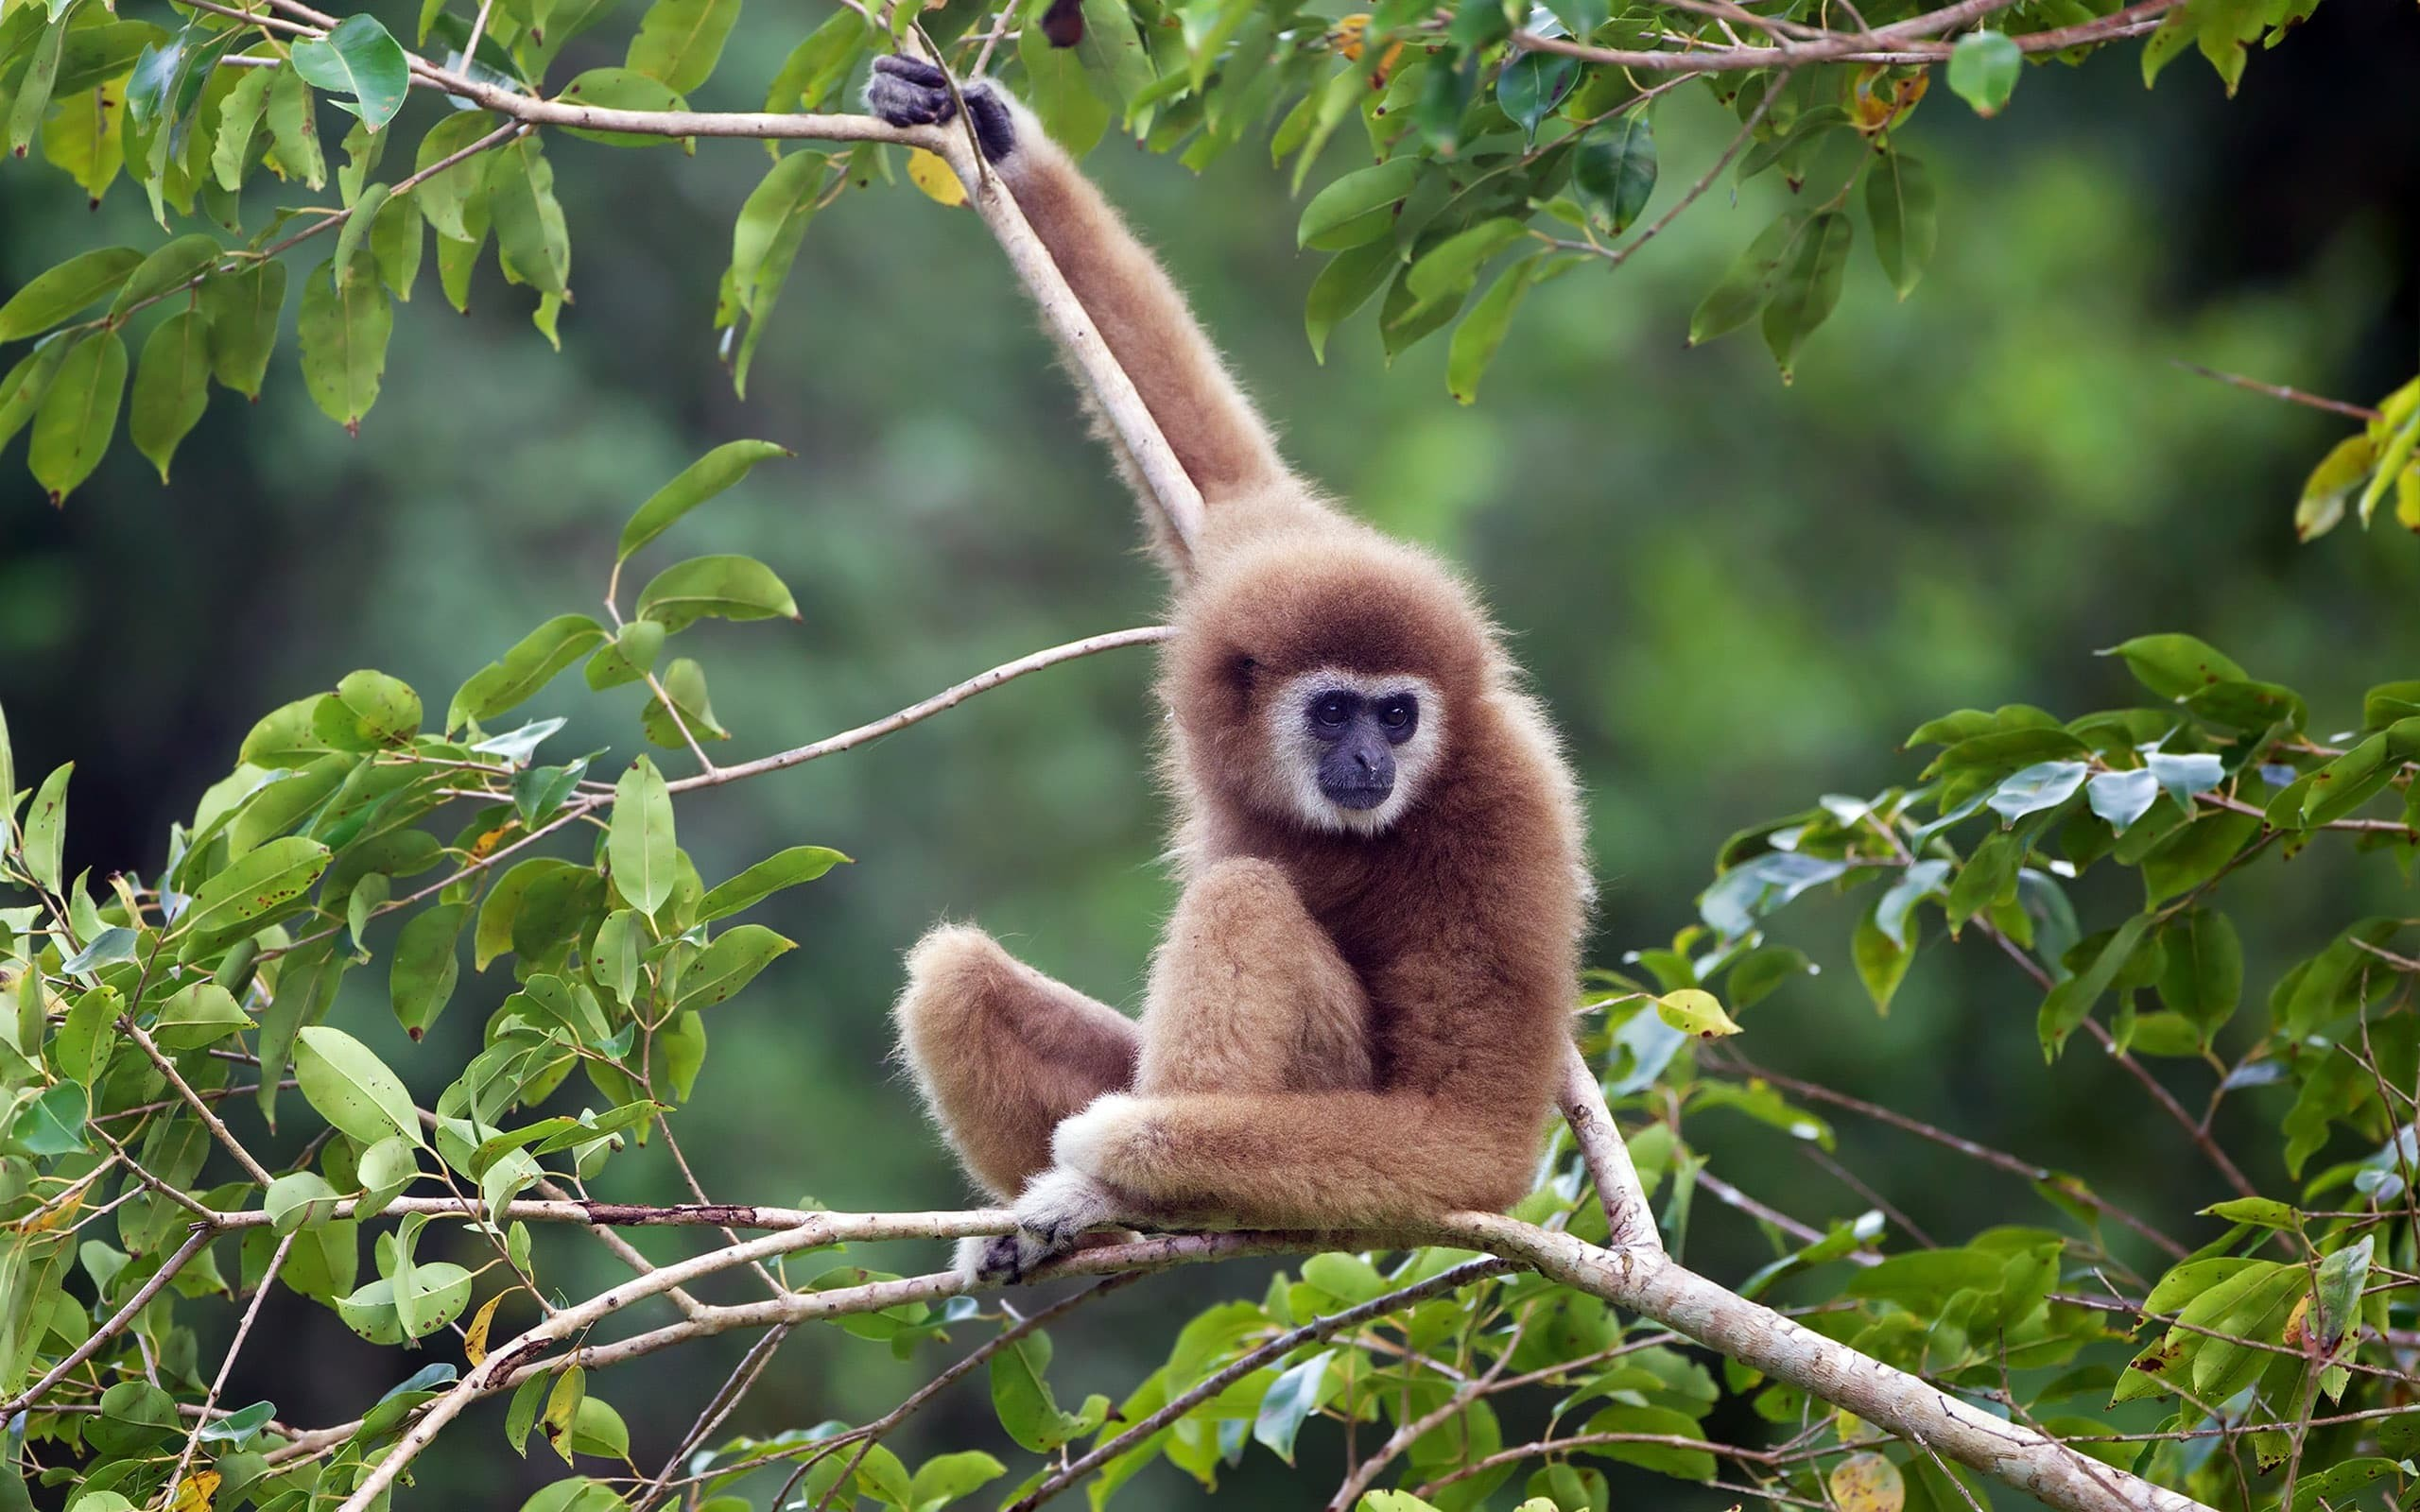 2560x1600 ... Top 25 most beautiful monkey photos HD in the world